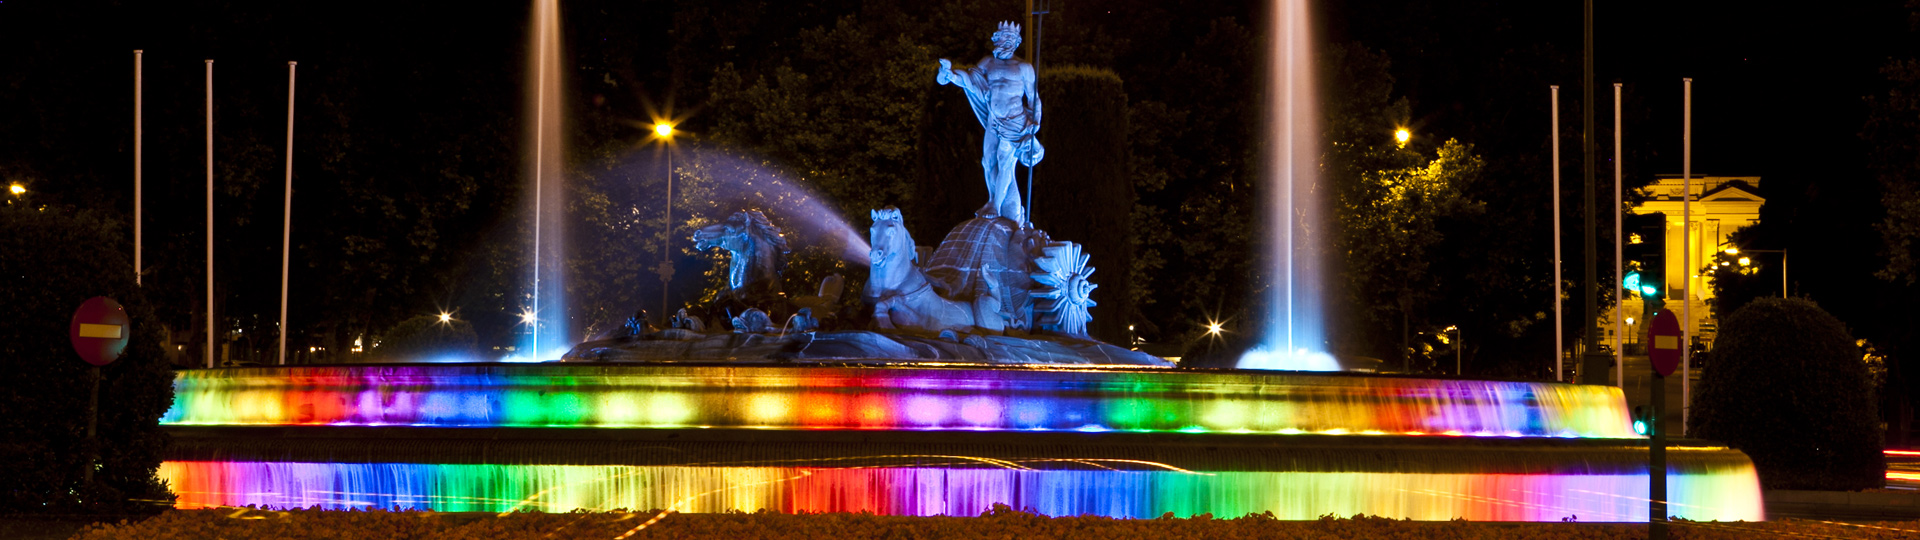 The Neptune Fountain in Madrid suitably attired for World Gay Pride Day